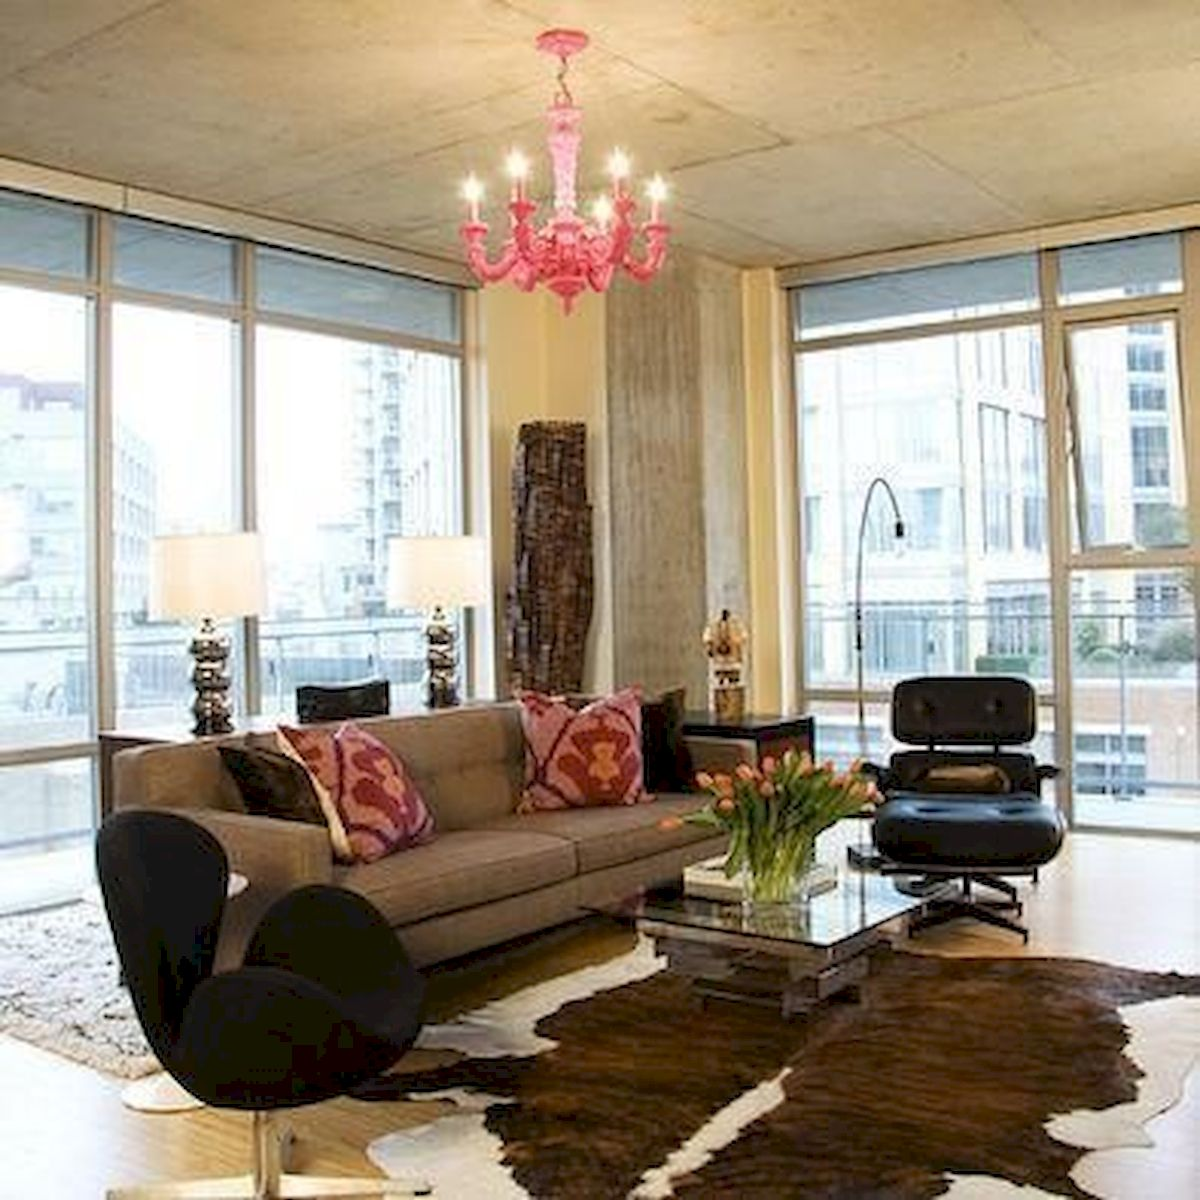 50 Best Living Room Decor Ideas With Artwork Rugs (48)